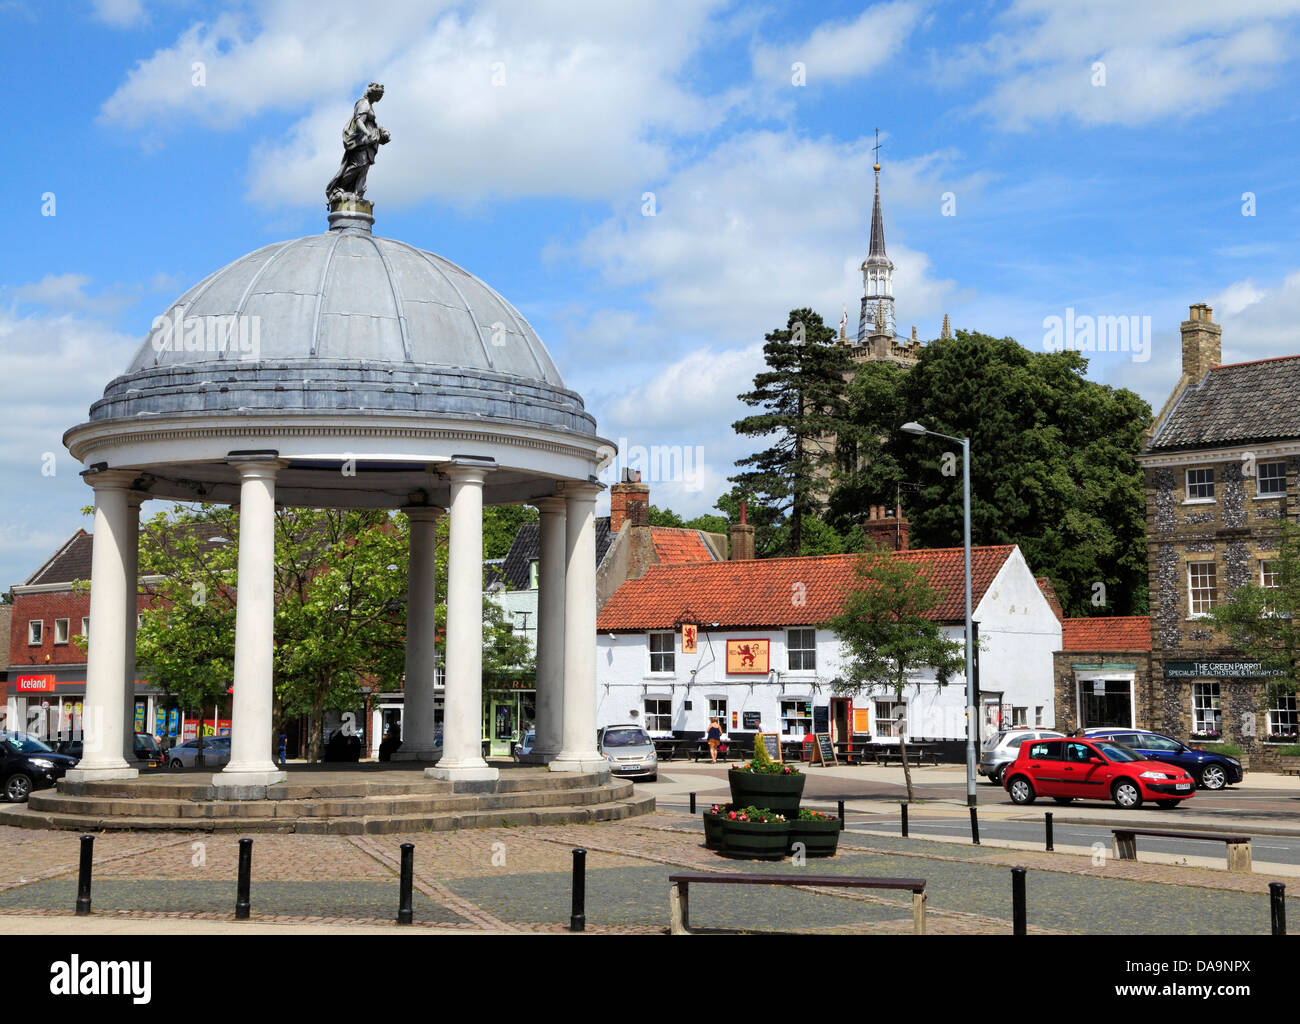 Swaffham, Norfolk, Market Place and 18th century Market Cross, England UK, town towns - Stock Image